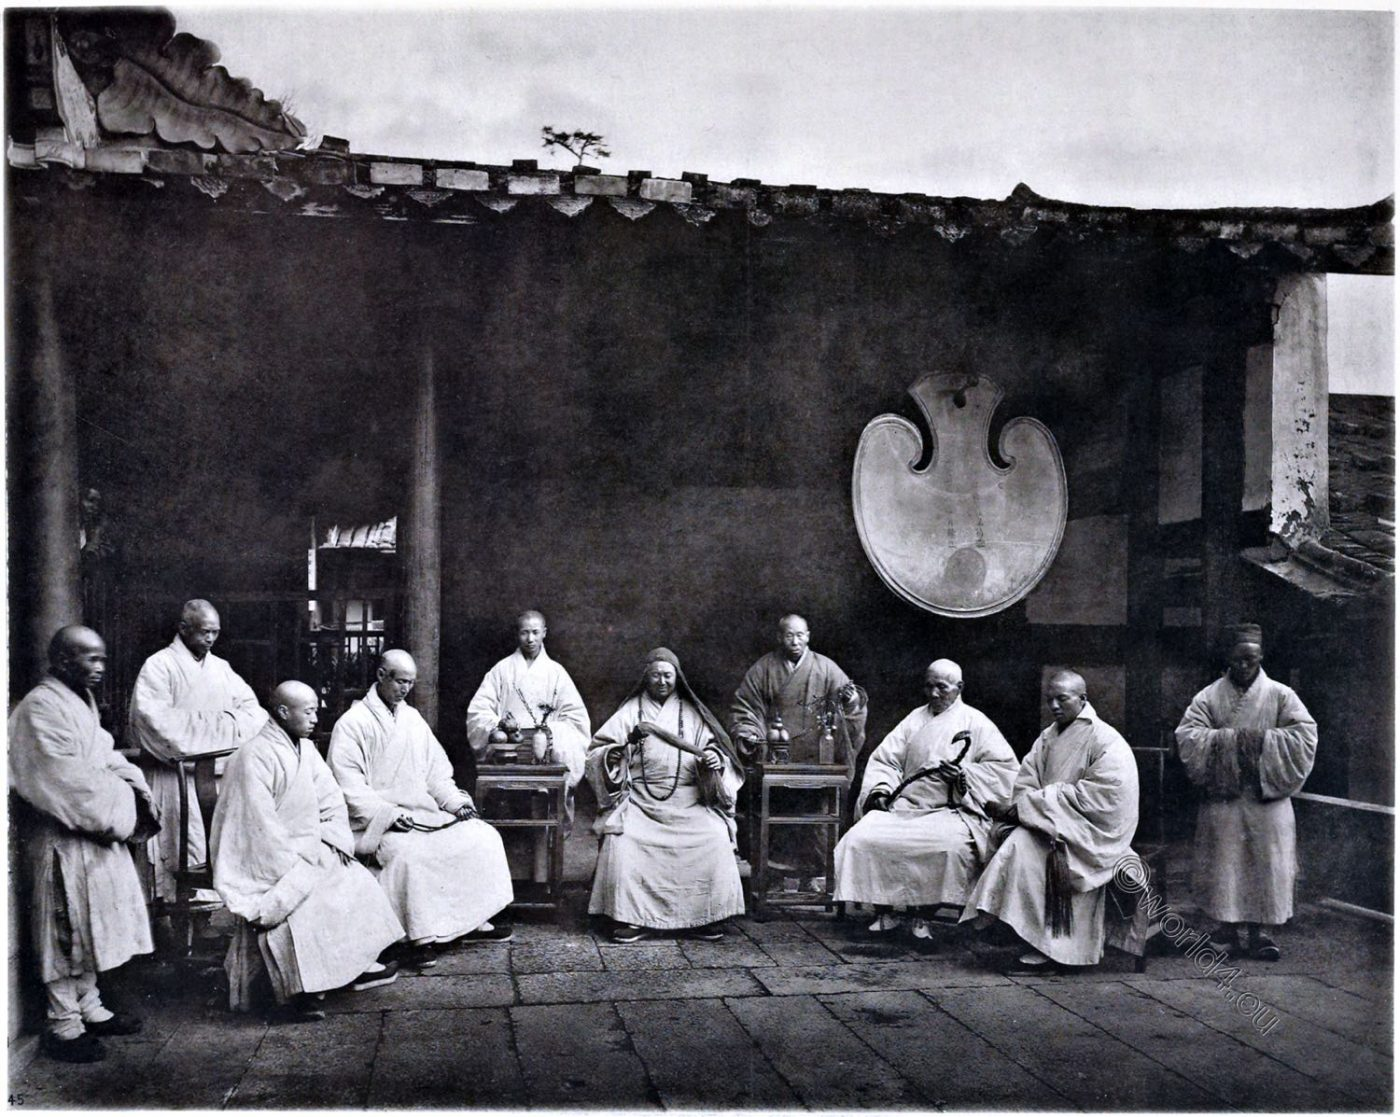 John Thomson, Monastery, China, Abbot, Monks,  Gushan, Buddhist,